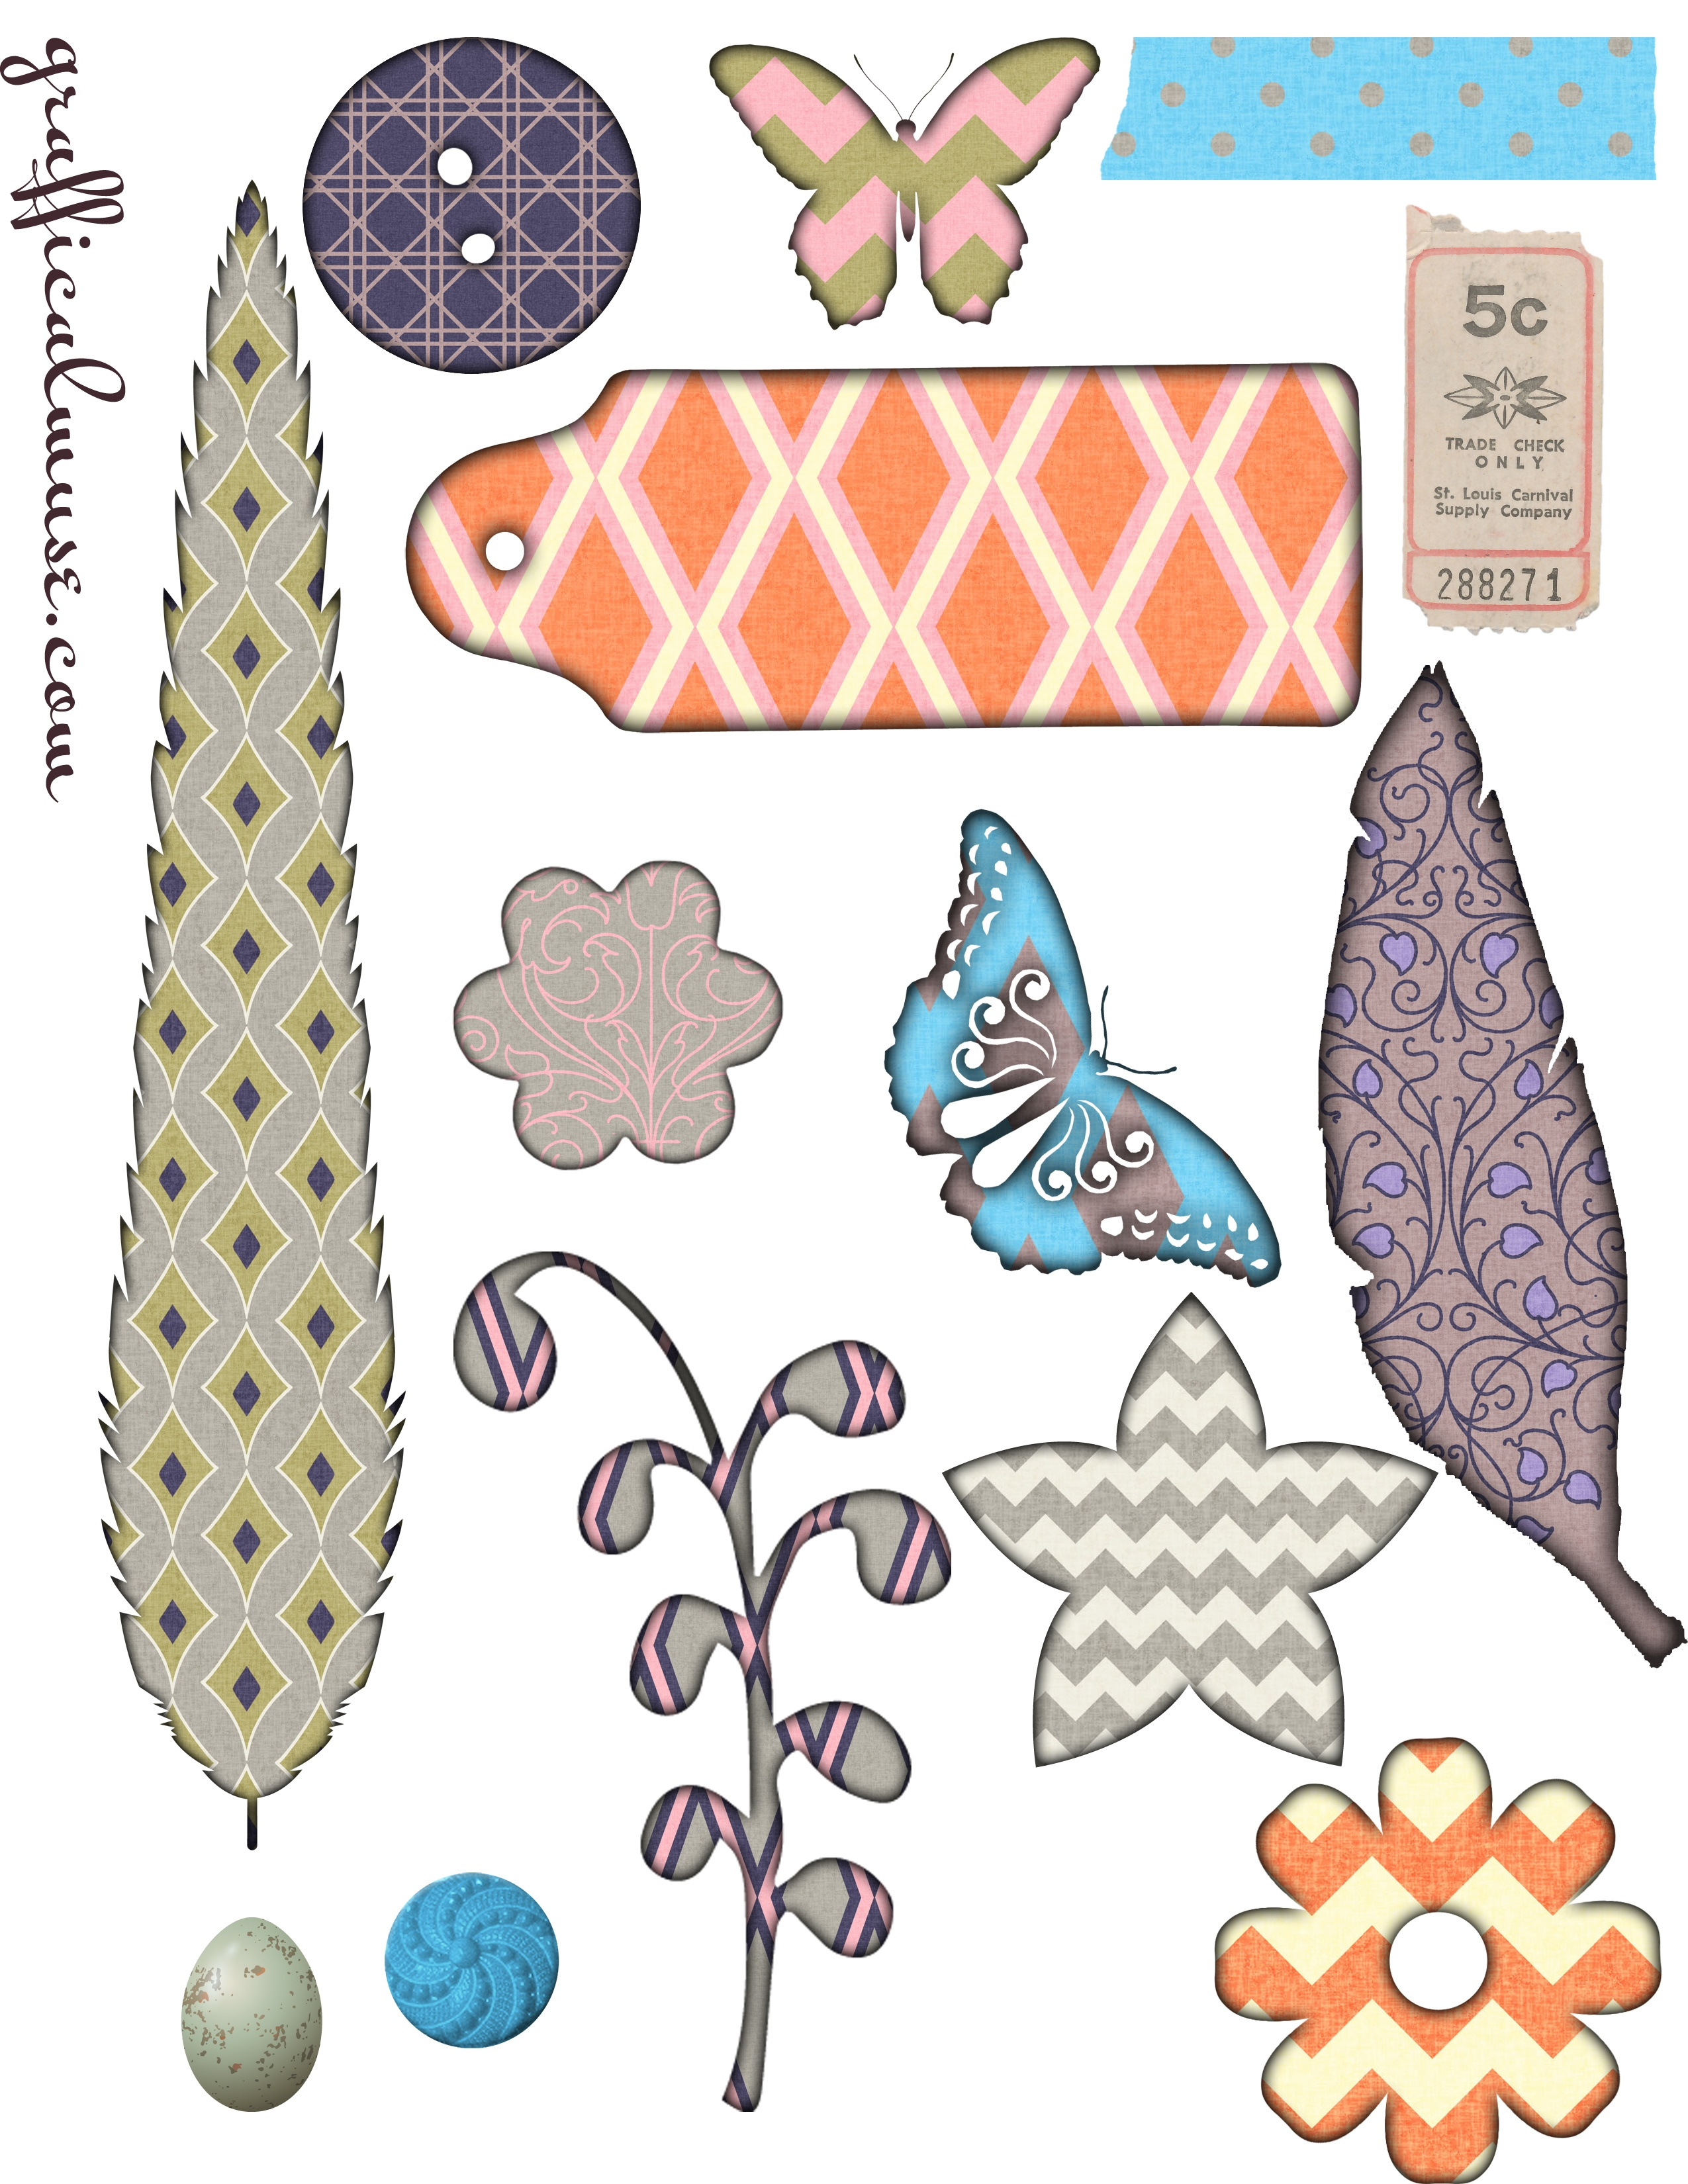 Free Printable Altered Art Collage Sheet - The Graffical Muse - Free Printable Picture Collage